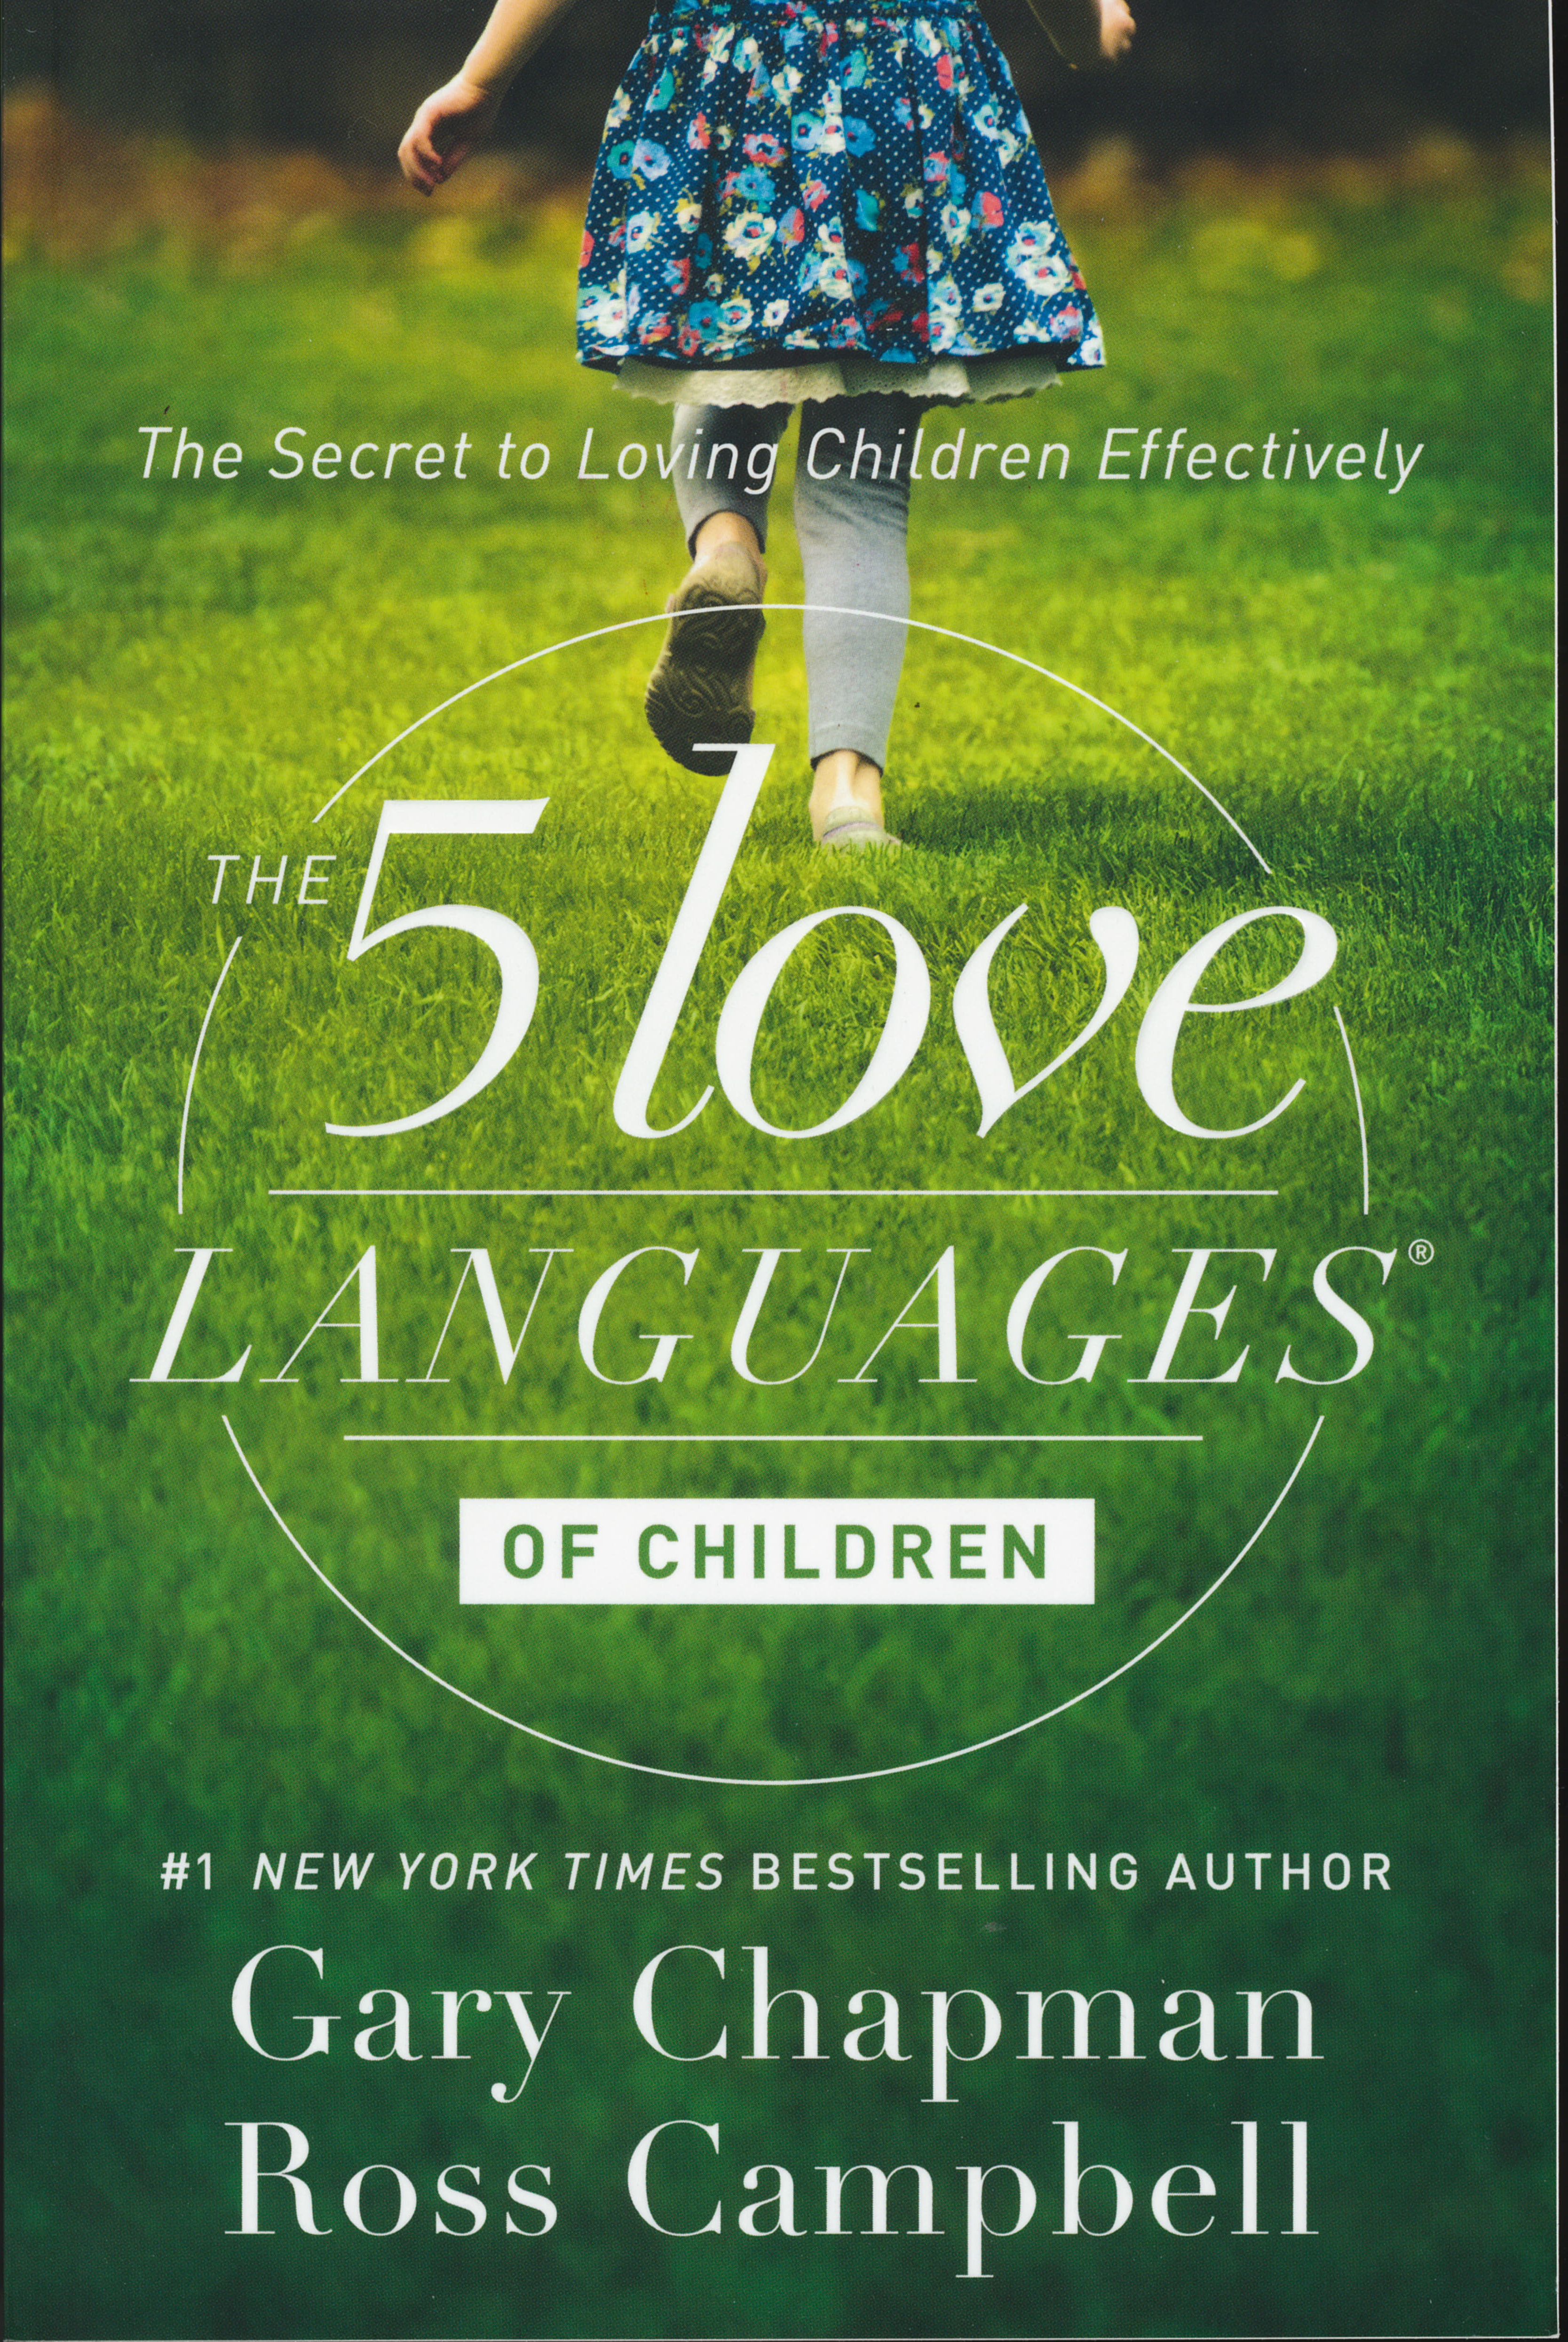 The 5 Love Languages of Children: The Secret to Loving Children Effectively by Gary Chapman and Ross Campbell 108-9780802412850